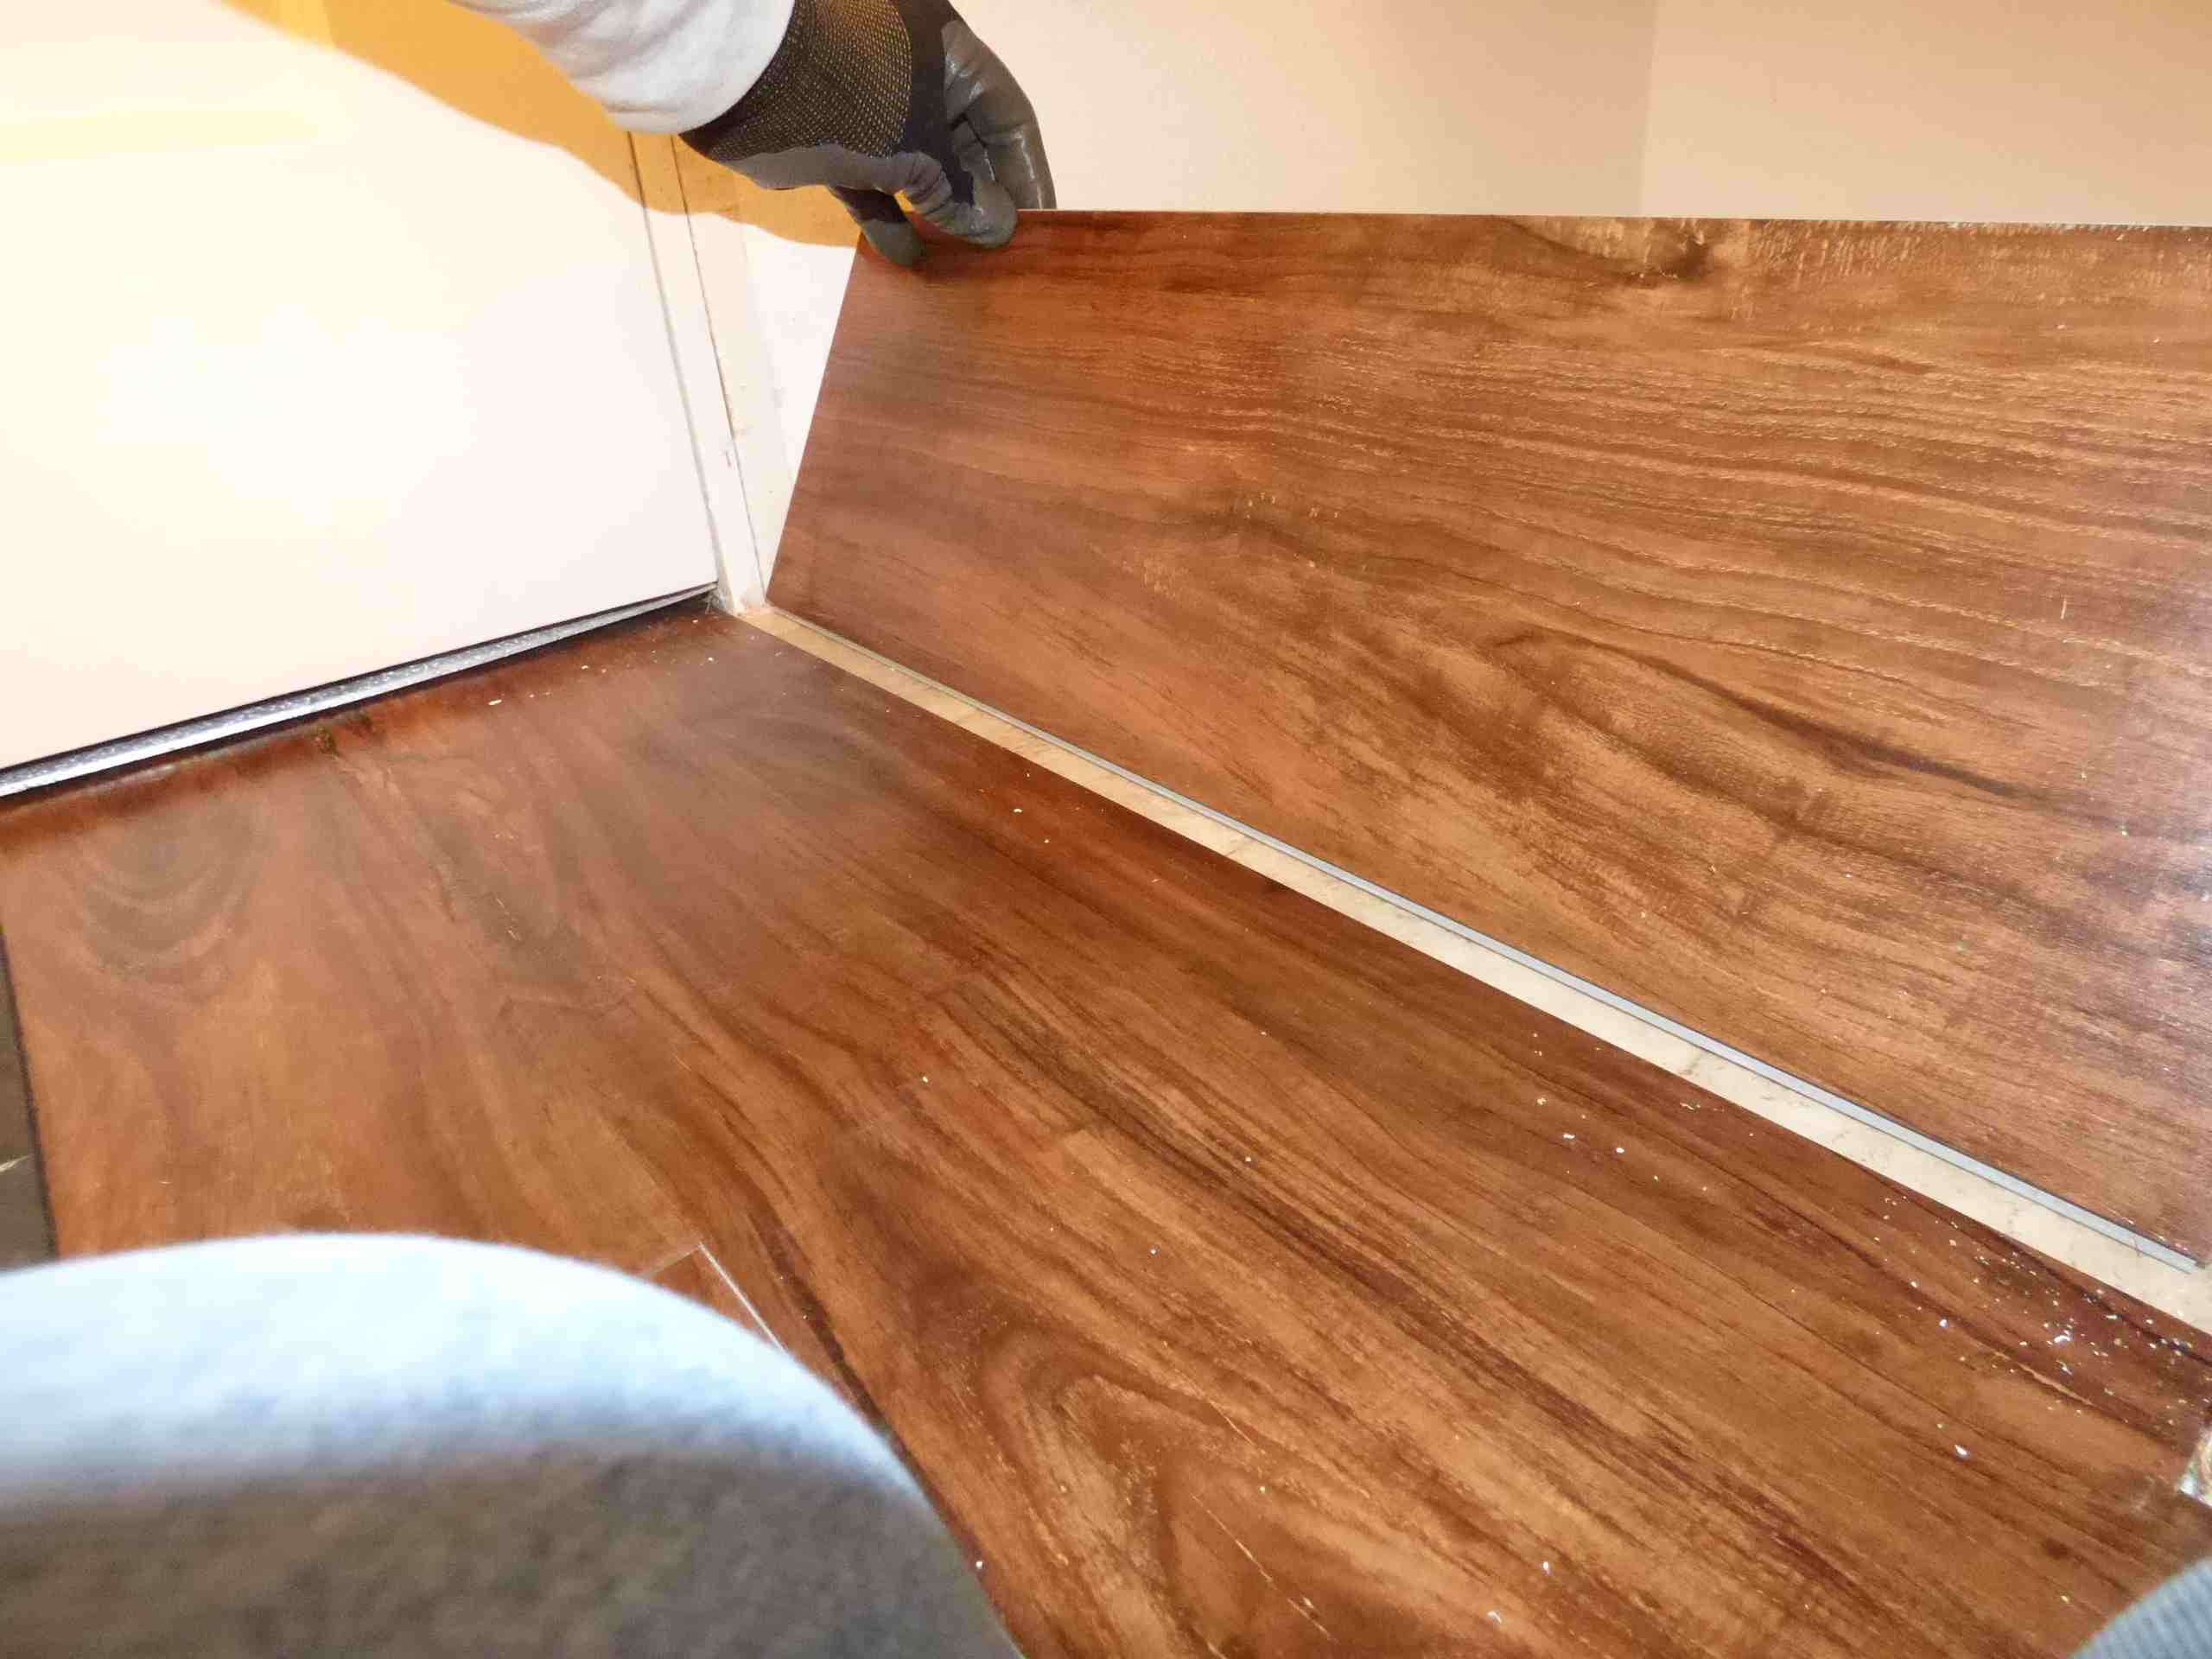 installing engineered hardwood flooring over vinyl of its easy and fast to install plank vinyl flooring for backwards installing plank flooring 56a4a0535f9b58b7d0d7e38e jpg